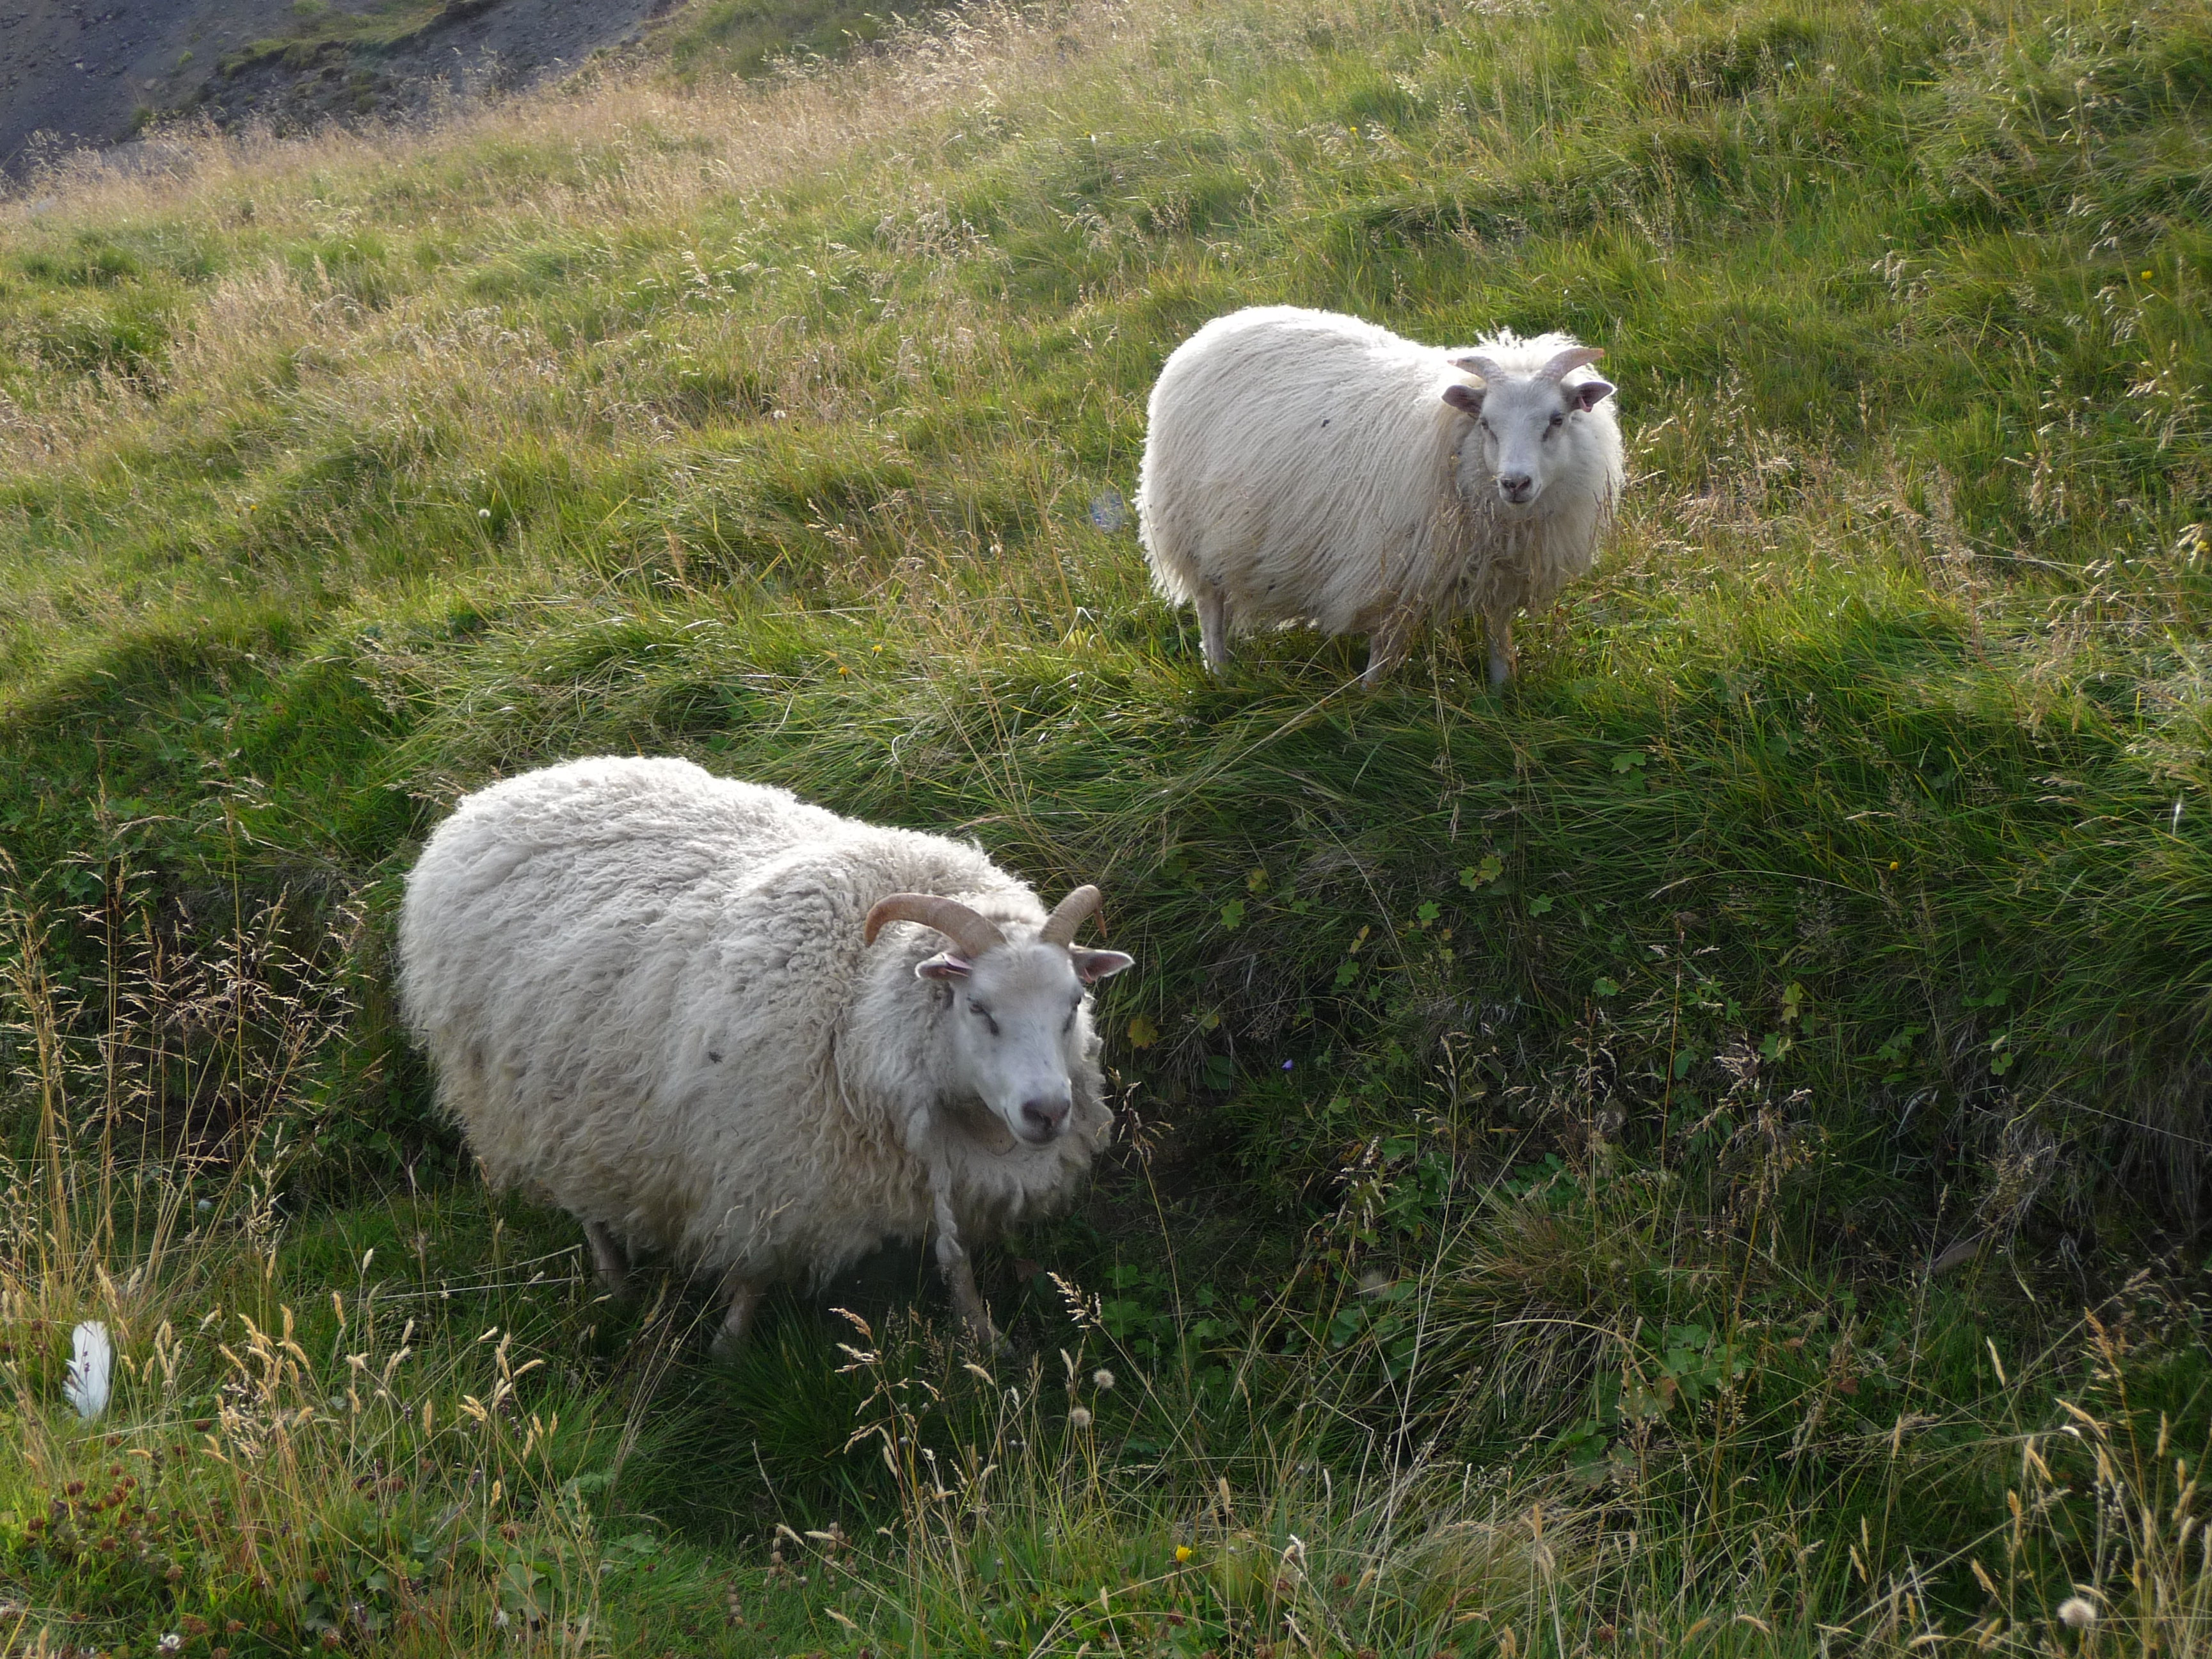 You usually see more sheep then people